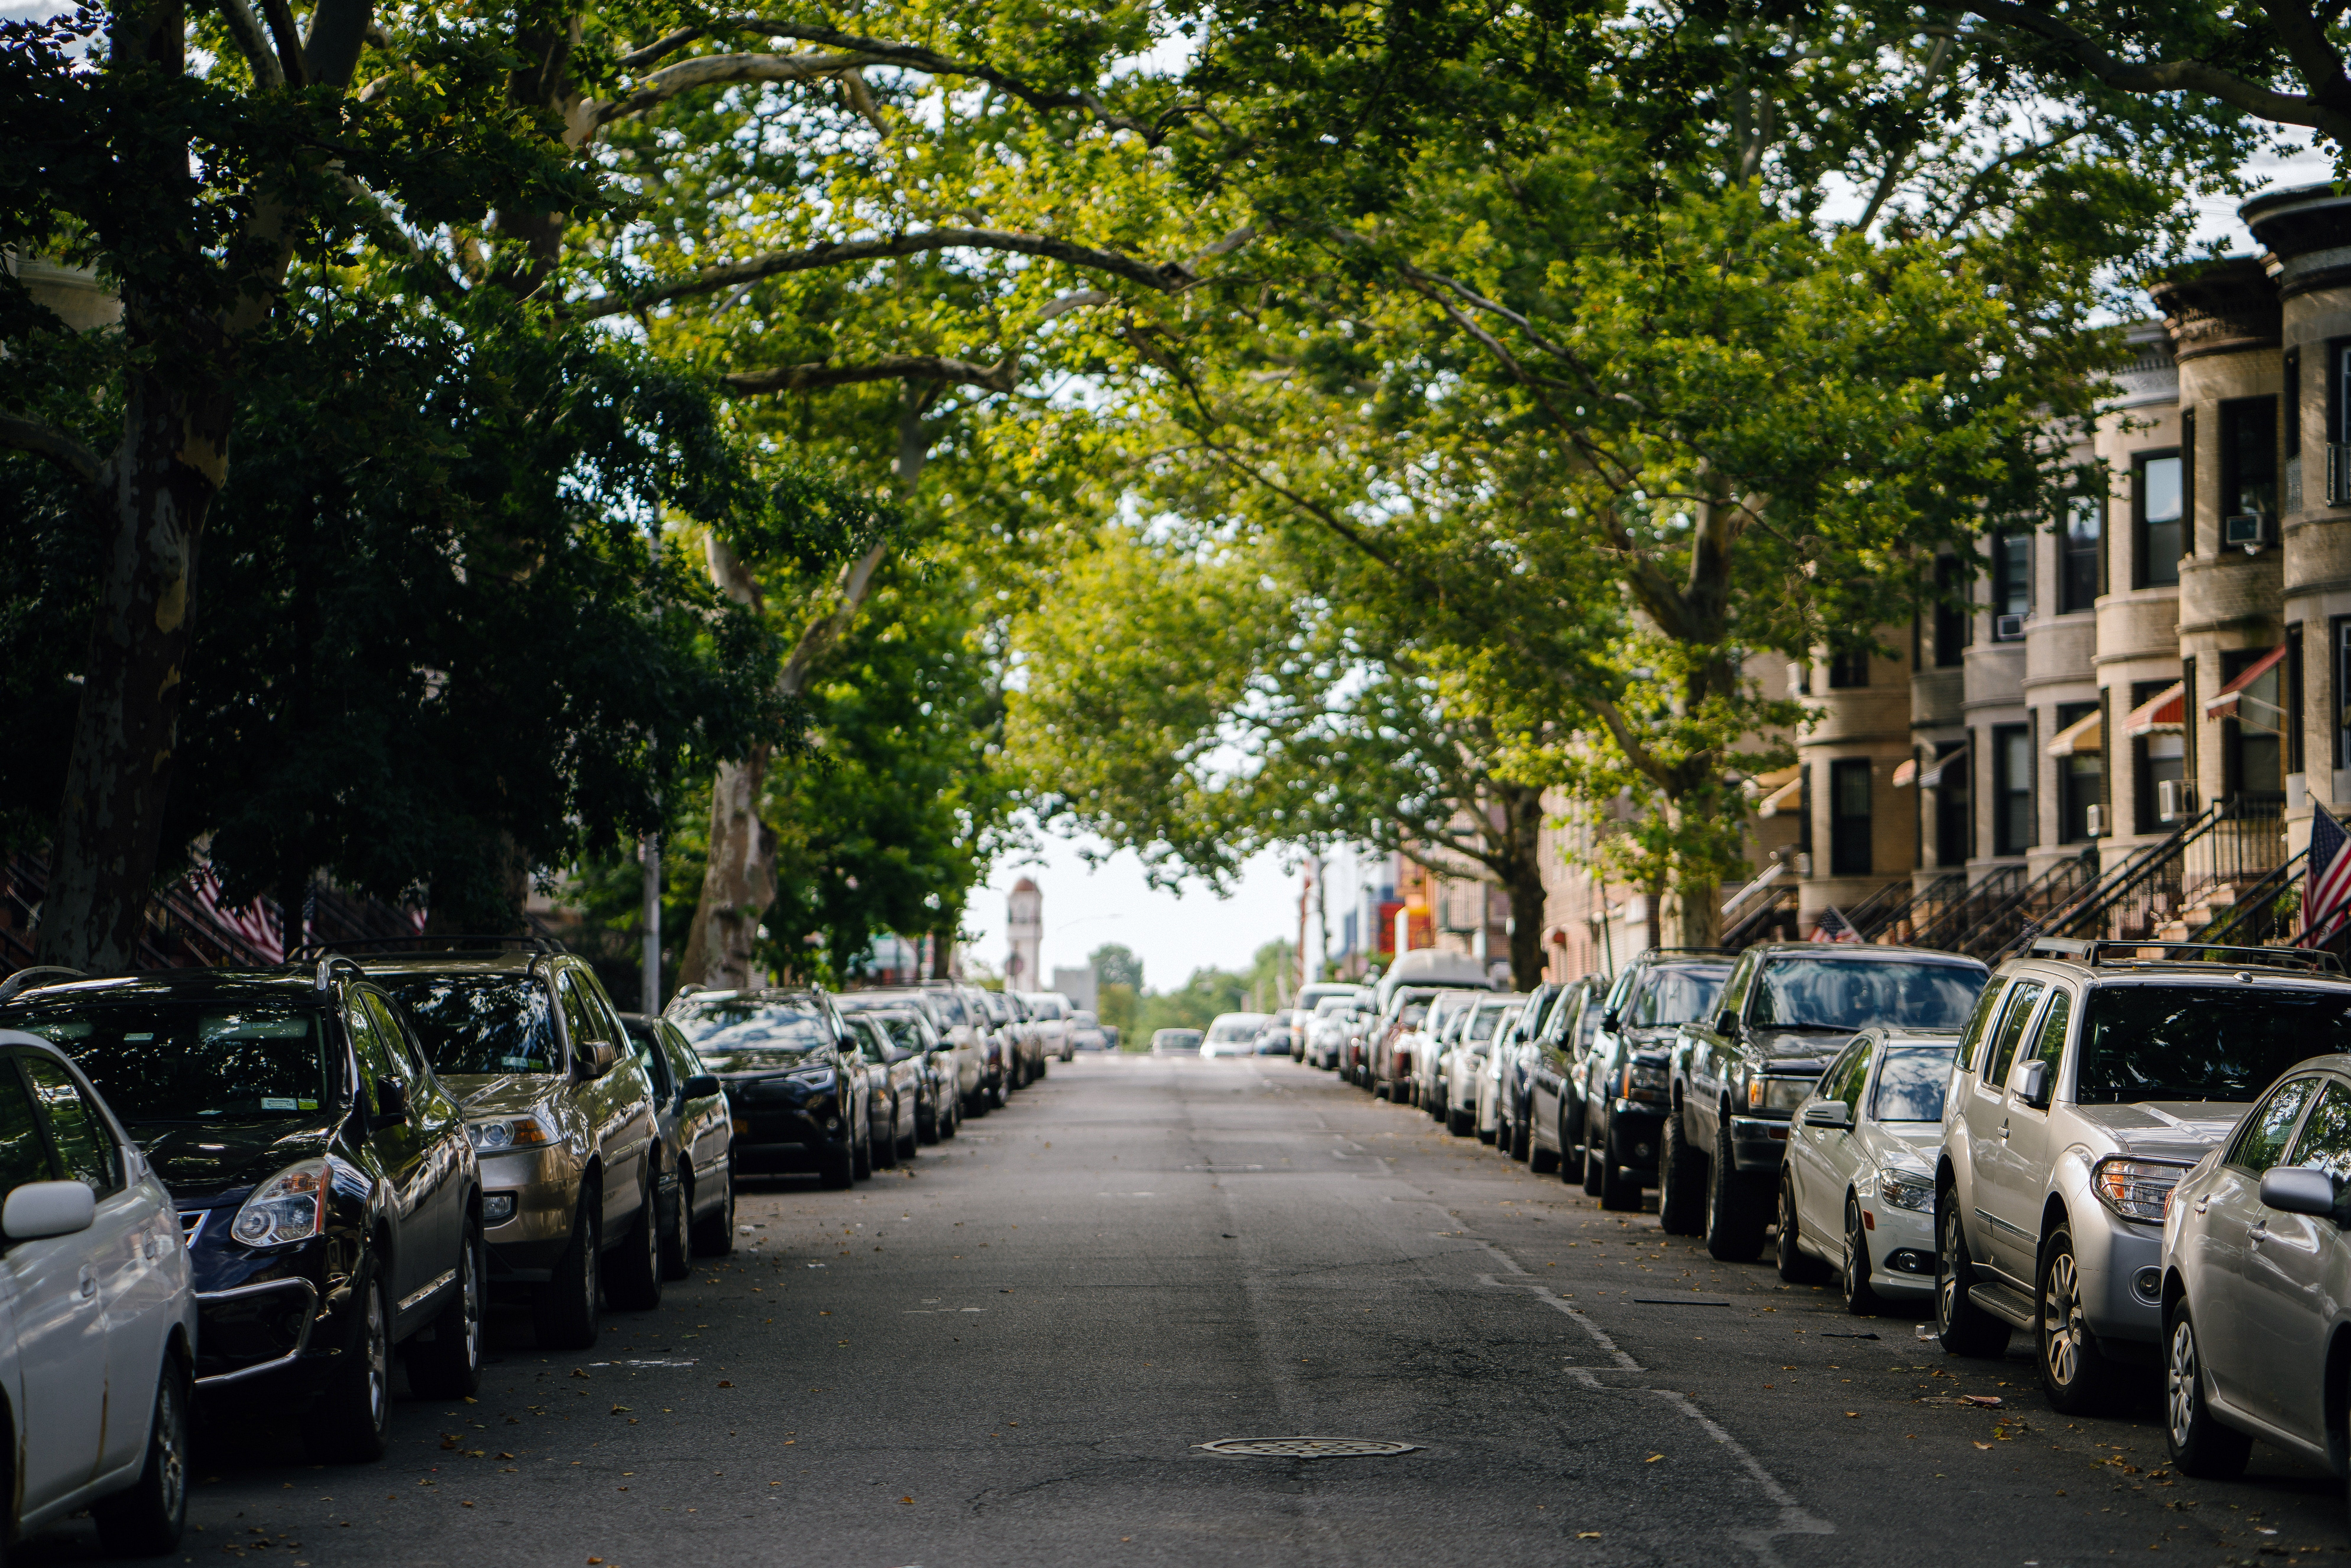 Here's how many trees are required to cool a city street